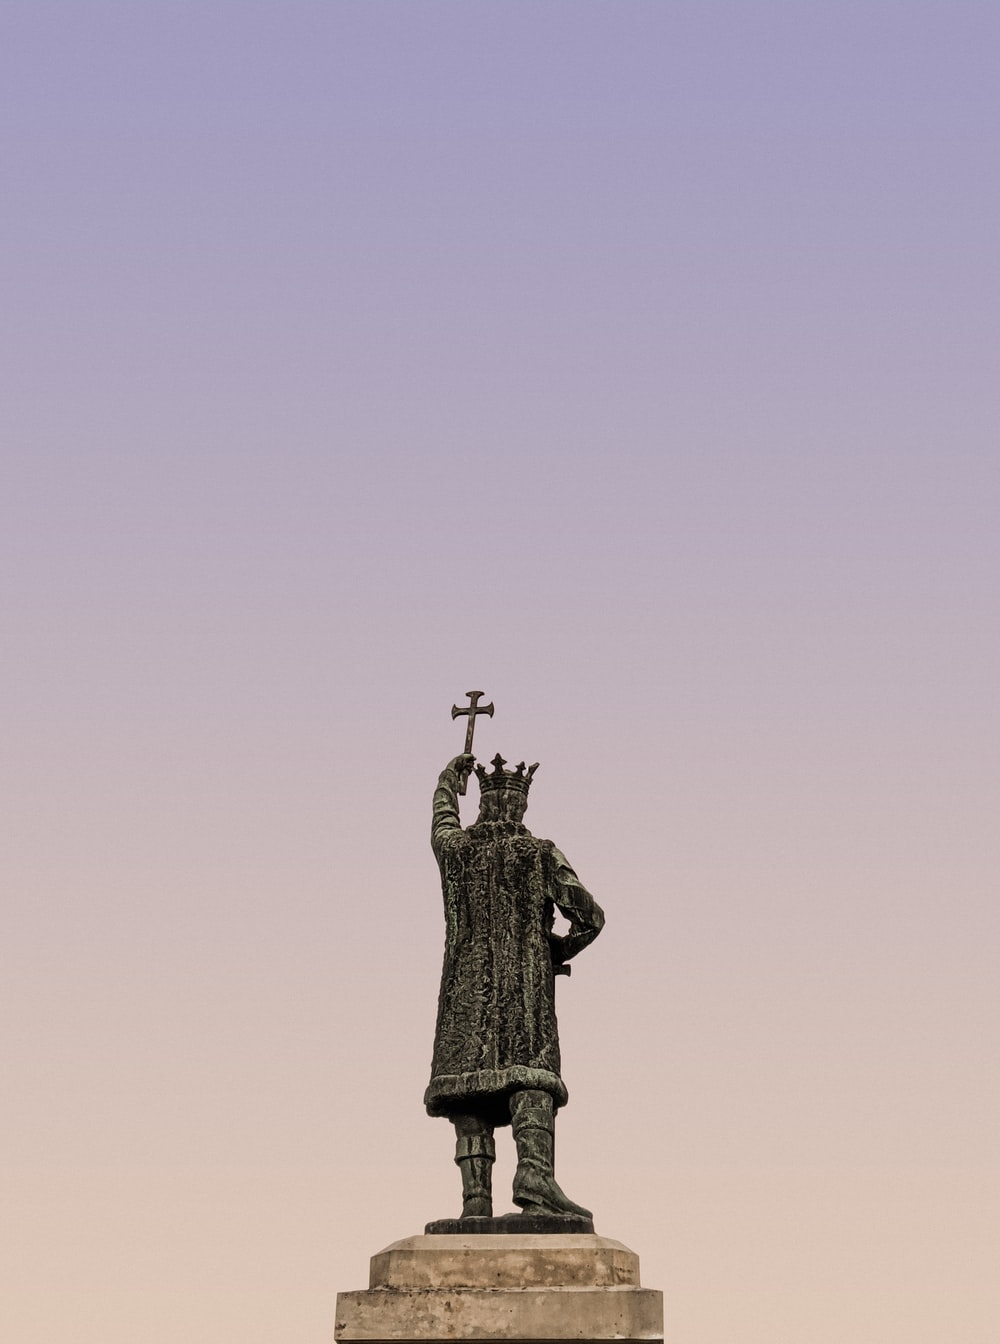 black statue of man on top of the mountain